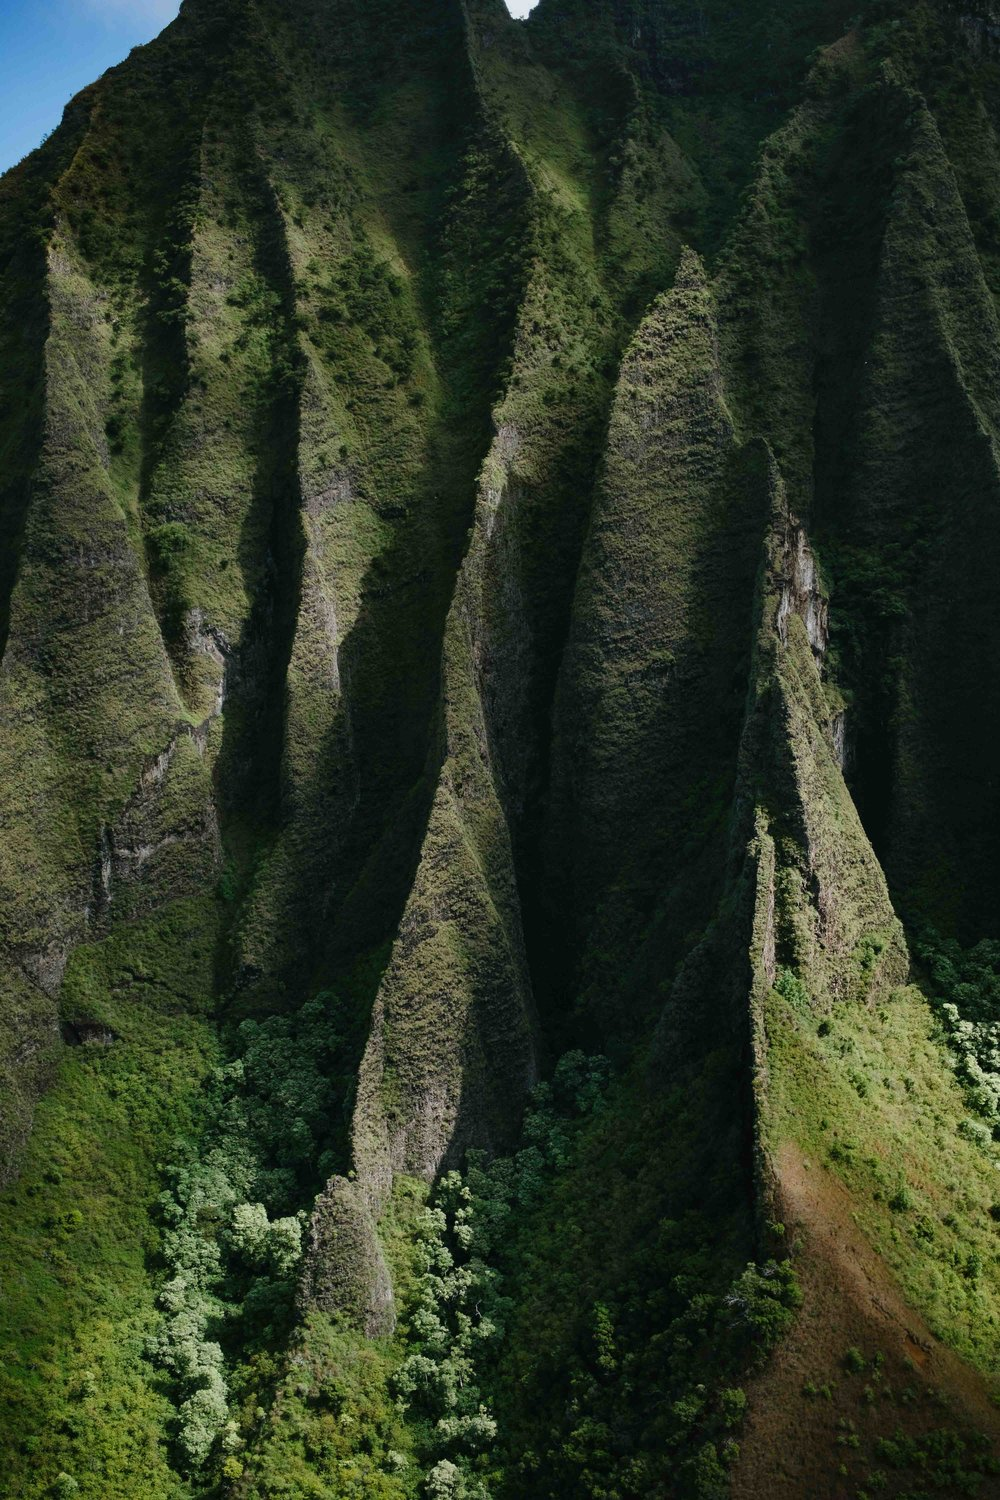 The cathedral cliffs of Kauai